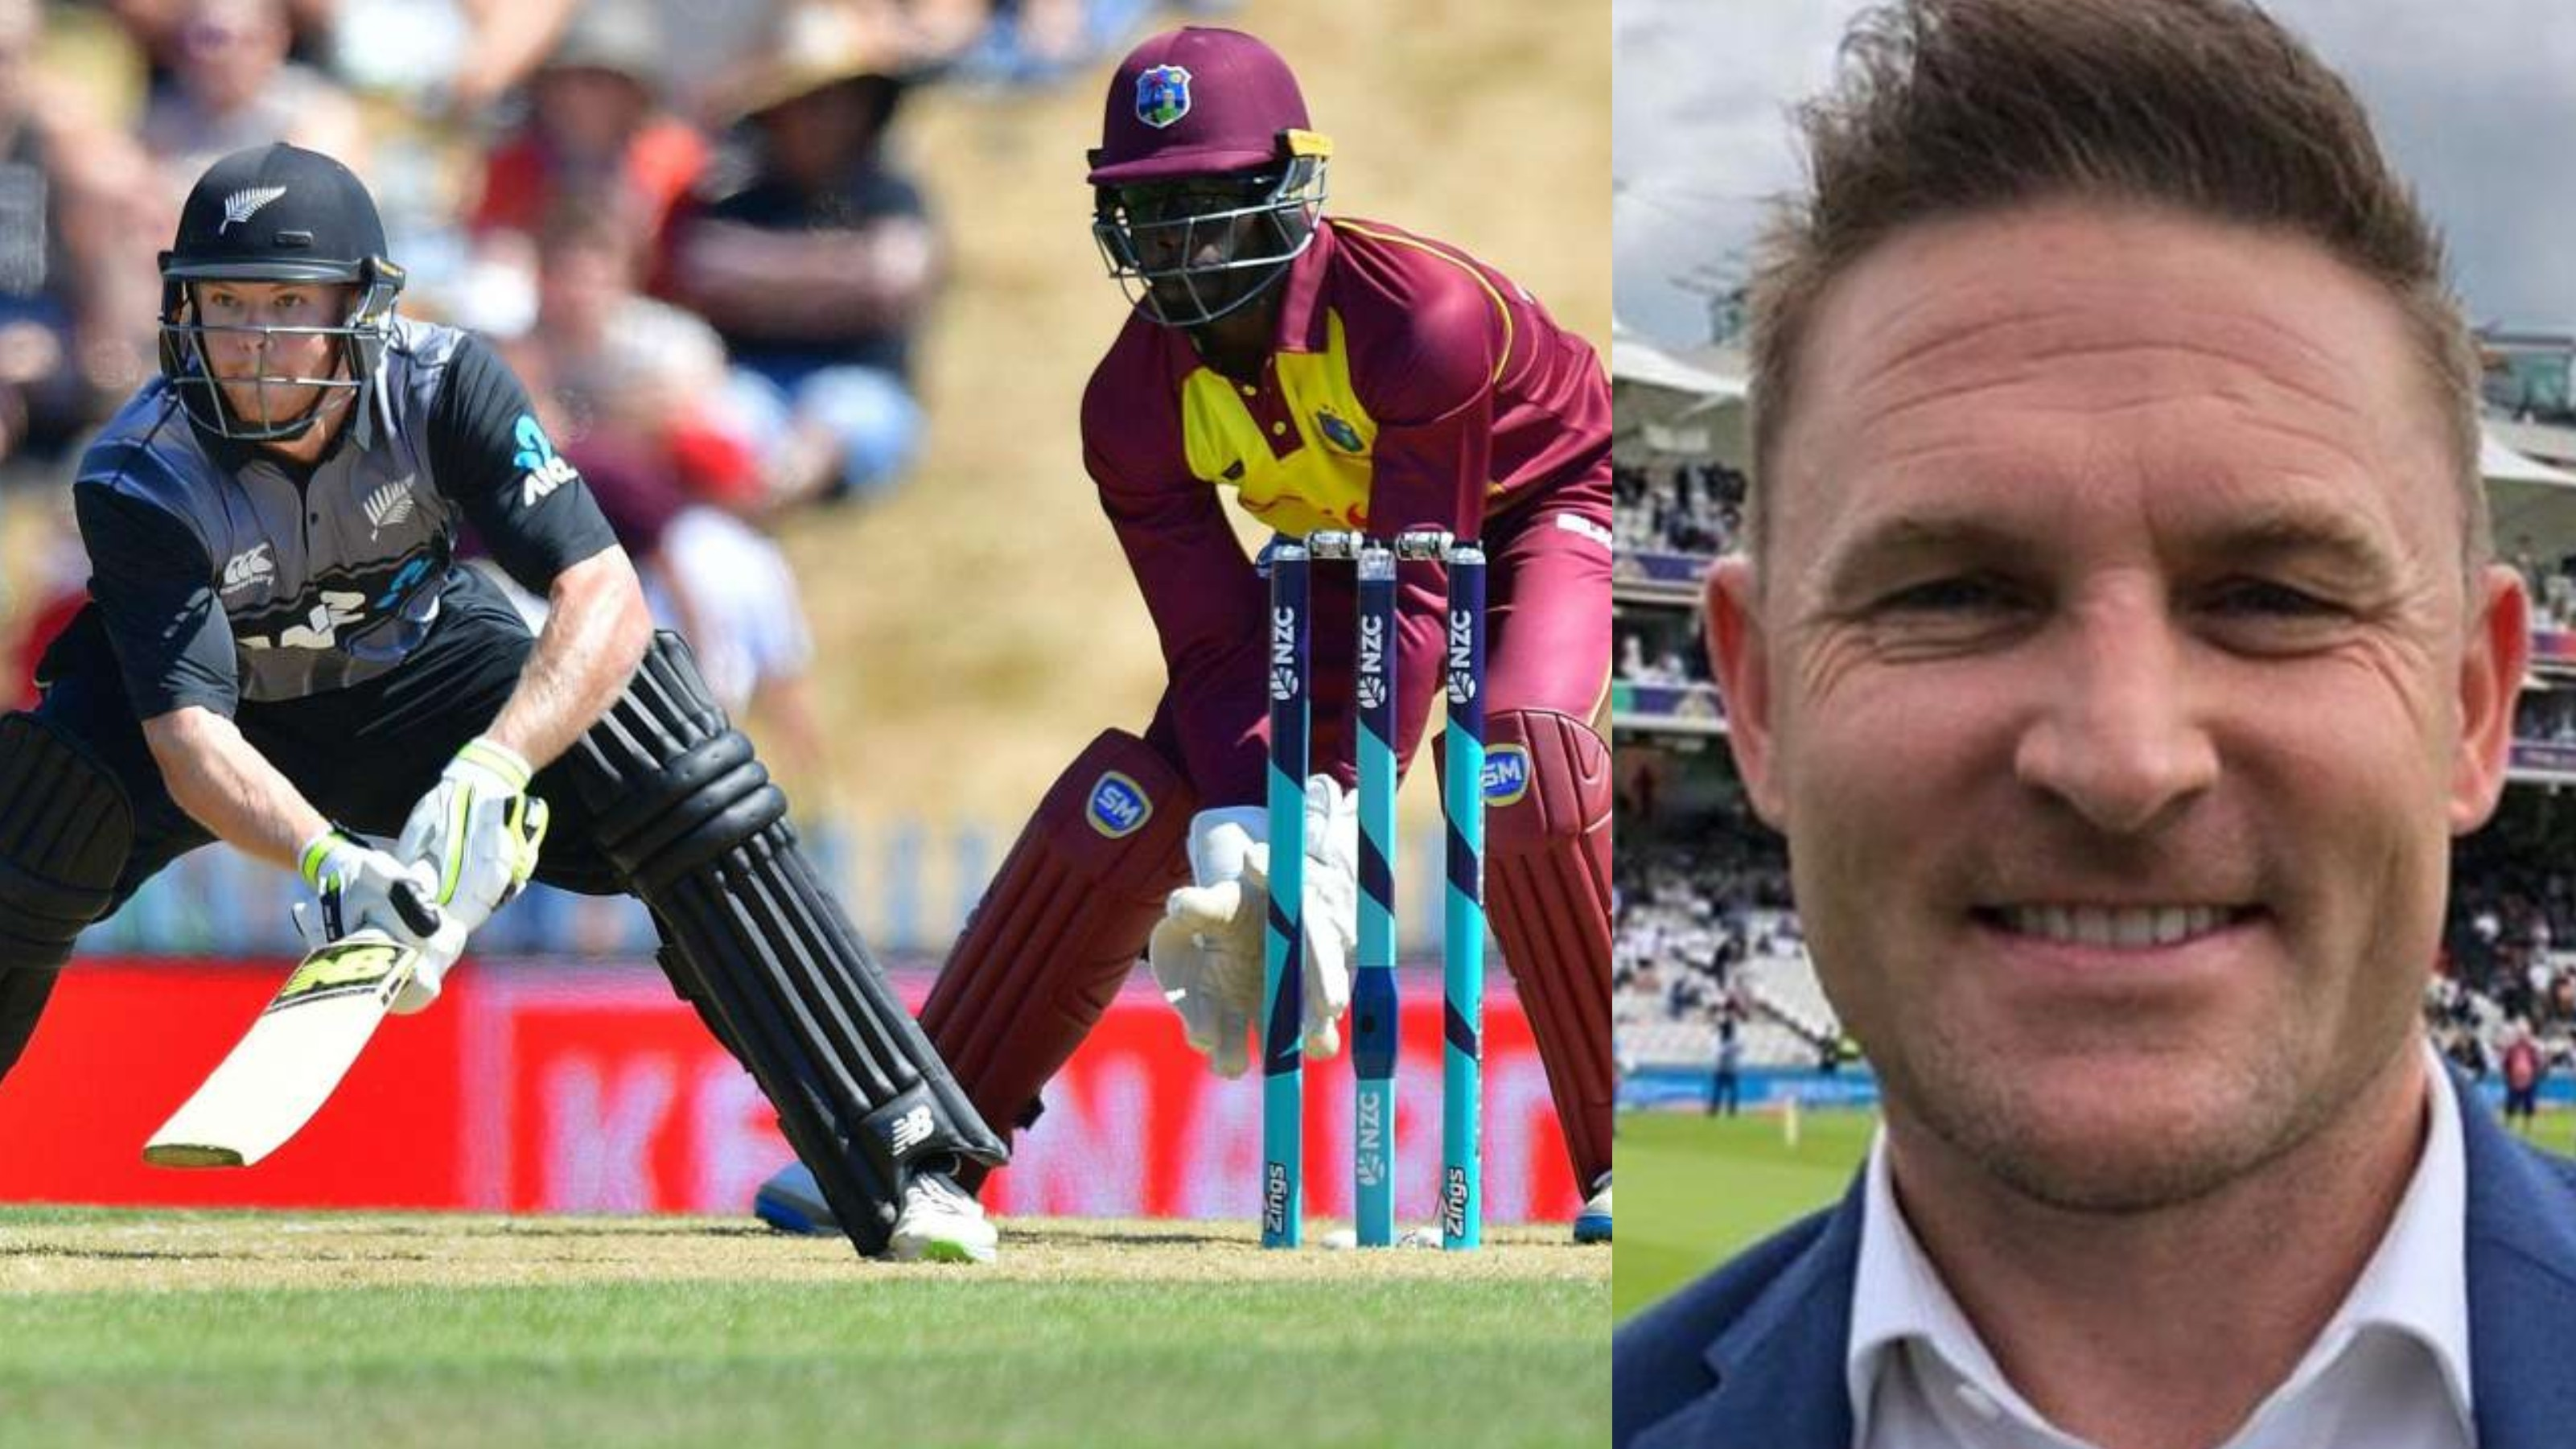 NZ v WI 2020: New Zealand must shift focus on T20Is with West Indies series, says Brendon McCullum